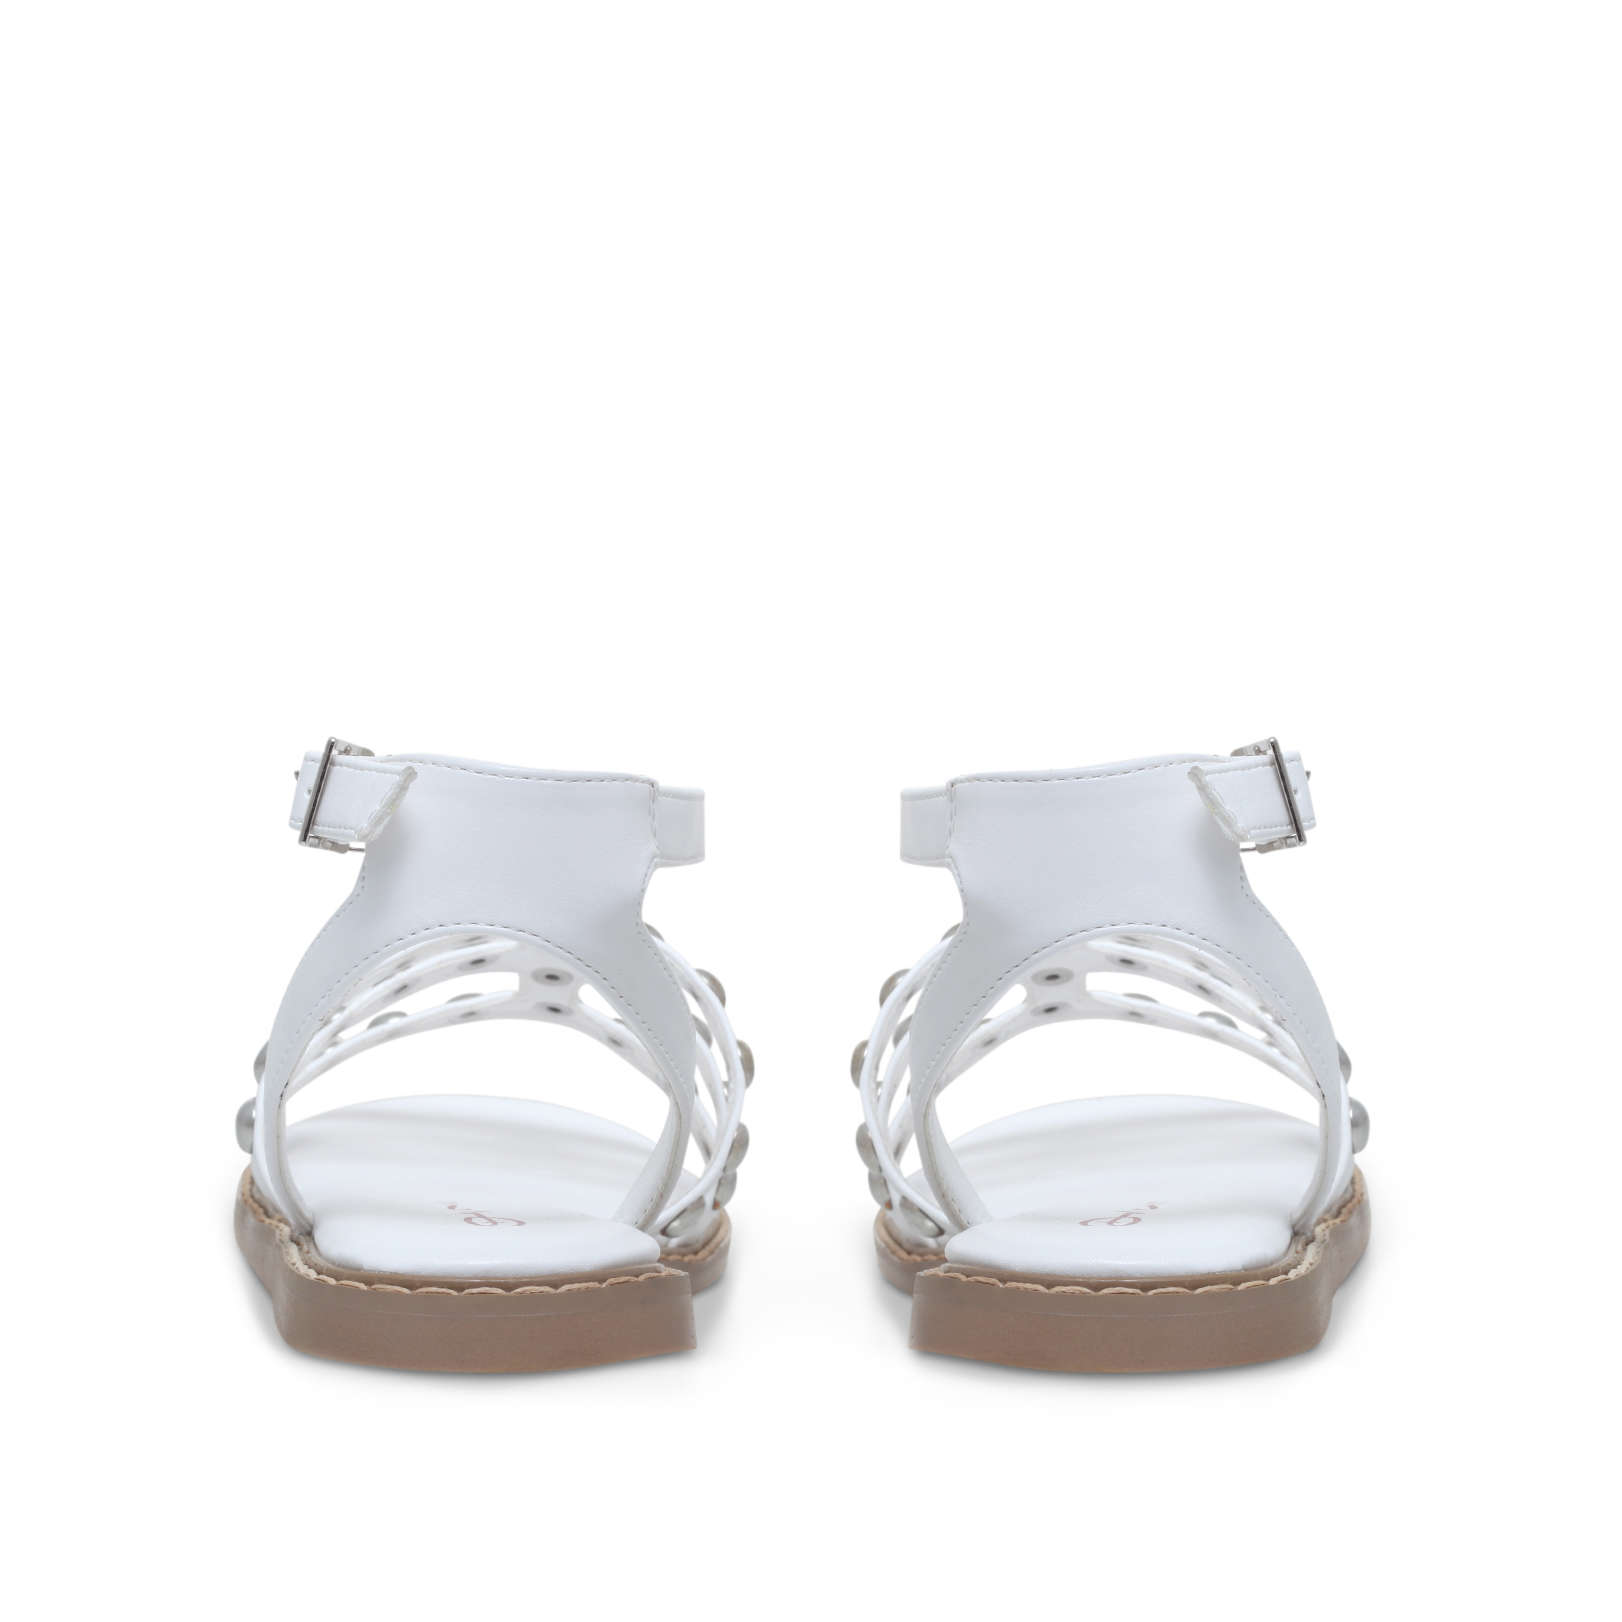 4bef5335483b JEMIMA Dolcis Jemima White Summer Sandals by DOLCIS